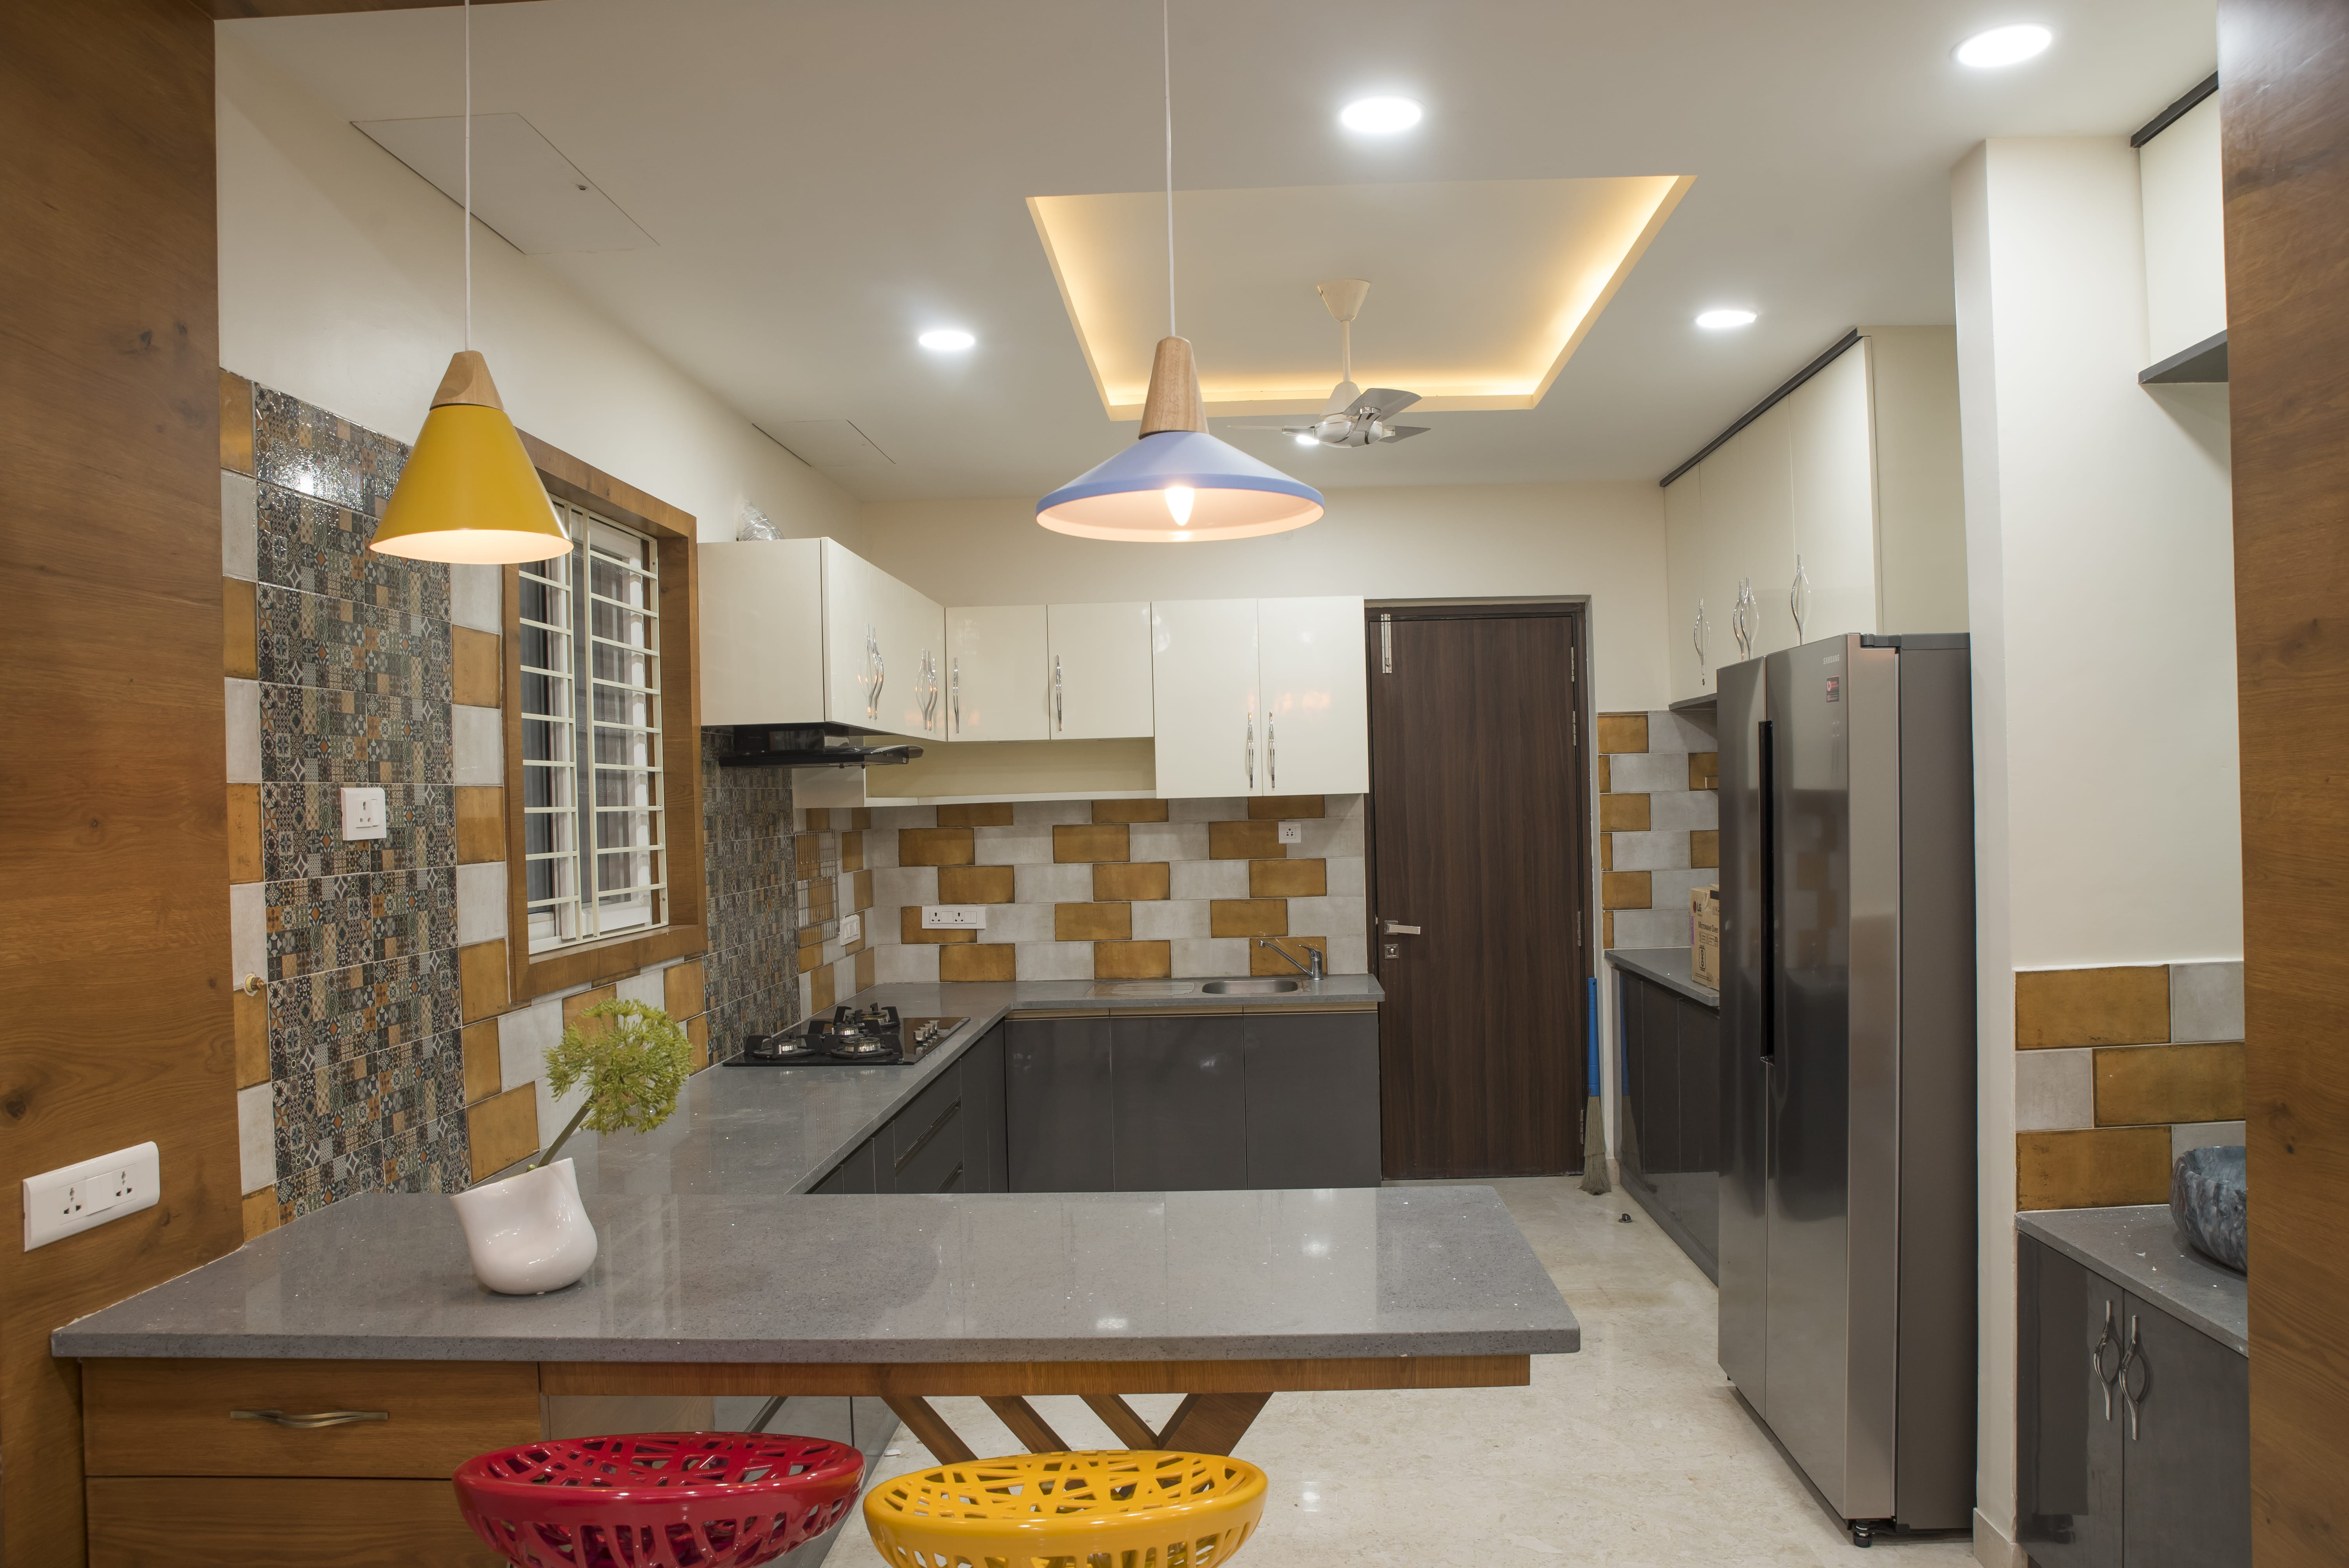 Small Kitchen Interior Design Ideas in Indian